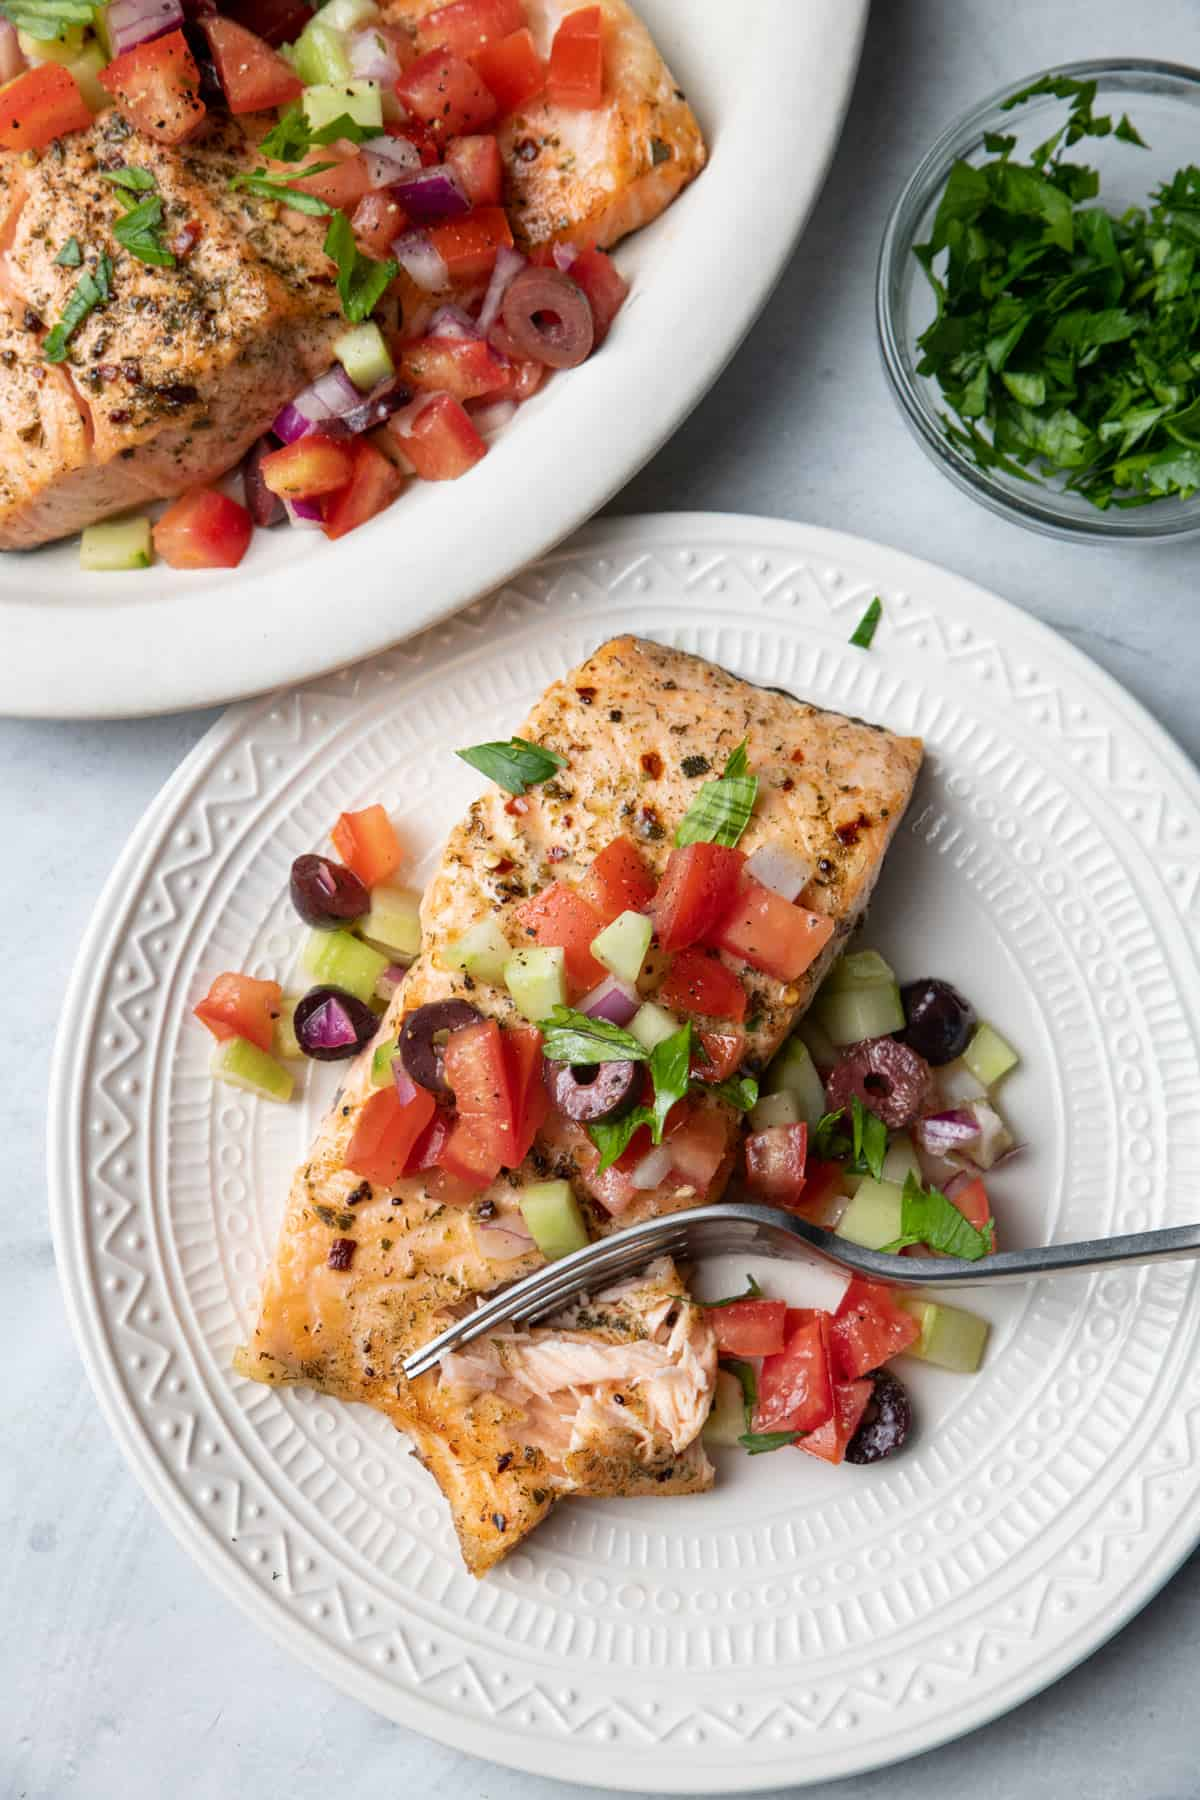 Plate of salmon cooked in air fryer, topped with greek salad